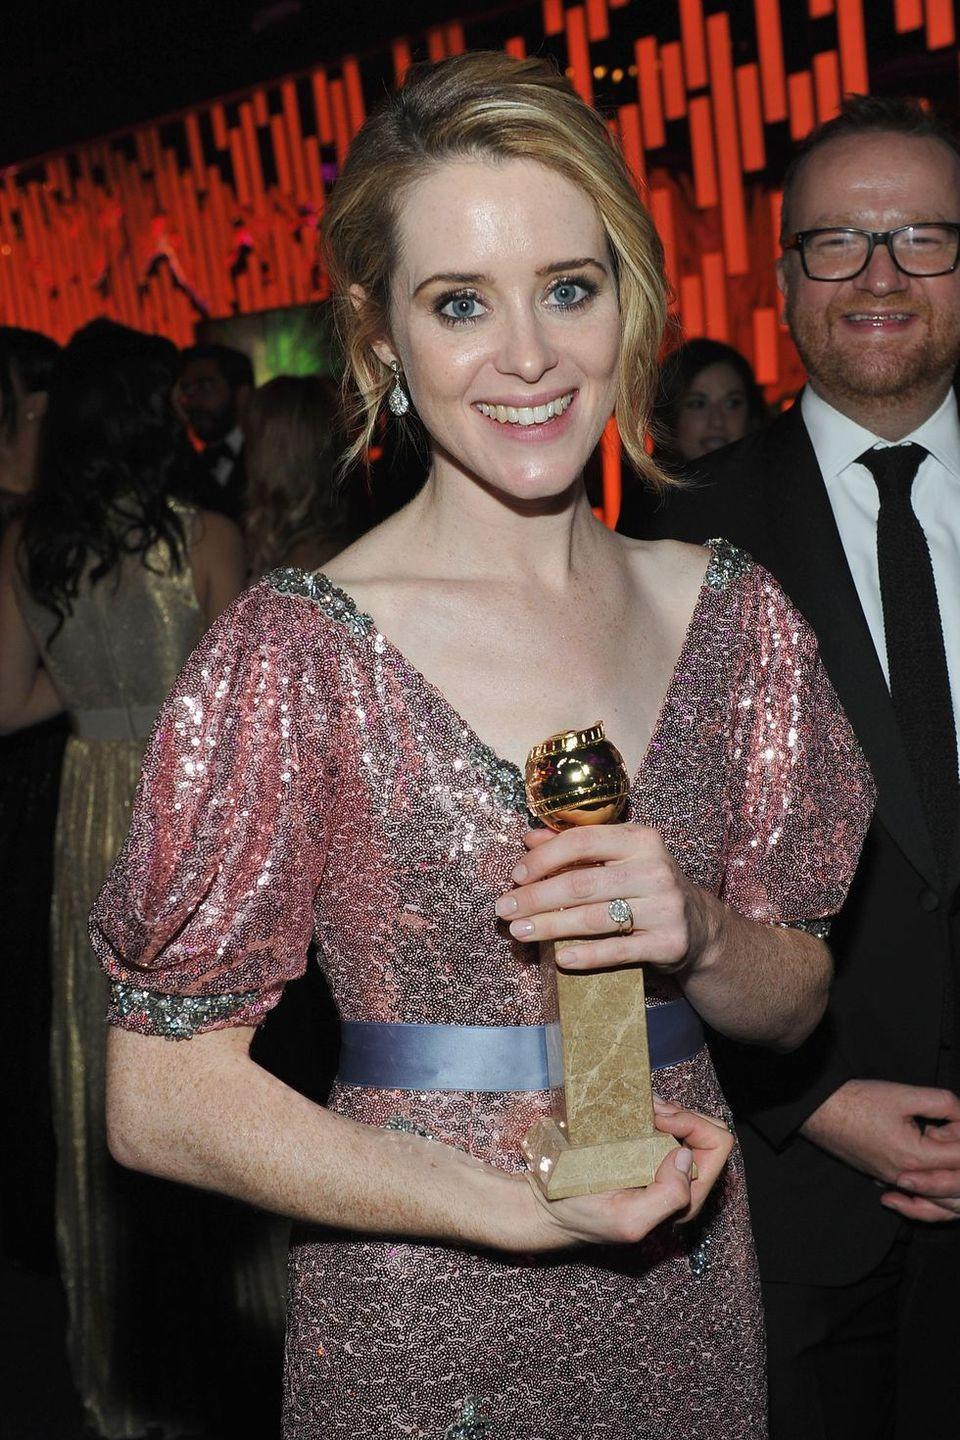 """<p>""""I tried to cast almost everyone in Britain before Claire Foy,"""" <em>The Crown</em> creator, Peter Morgan, told <em><a href=""""http://variety.com/2016/tv/news/the-crown-netflix-royal-series-peter-morgan-claire-foy-1201907444/"""" rel=""""nofollow noopener"""" target=""""_blank"""" data-ylk=""""slk:Variety"""" class=""""link rapid-noclick-resp"""">Variety</a></em>. """"It was weird. Every time I went to a read through where we were doing auditions for 'The Queen,' I was interested in actress A or B I would skip the bit where Claire was in there. And then after about the fourth time, I went, 'This one is sensational, who's this?' And they said, 'Pete, she's been in four times. And you've gone for a better-known actress.' She very queen-like[,] slipped in and has proven to be very queen-like. Brilliantly effective.""""</p>"""